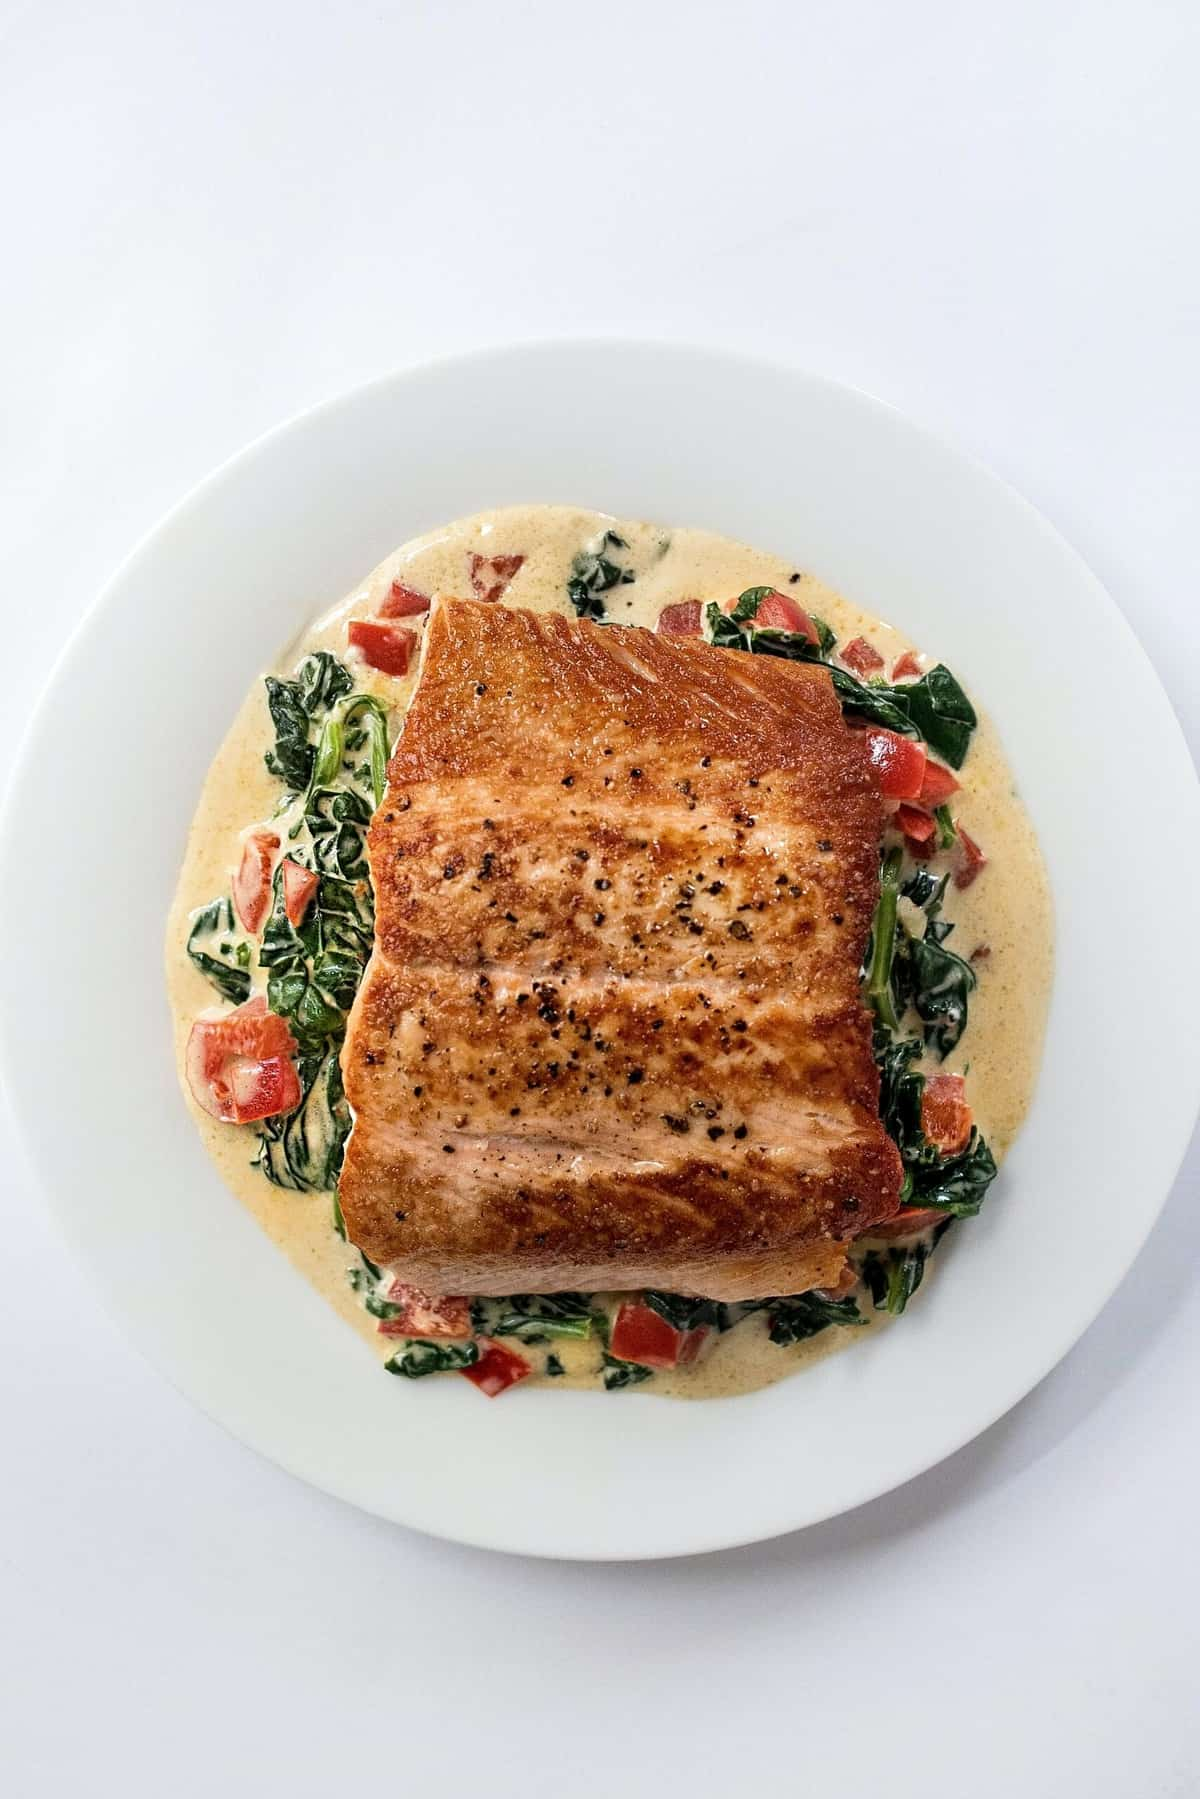 Birds eye view of salmon on a bed of greens in a white plate as an option for those following the type O blood type diet.